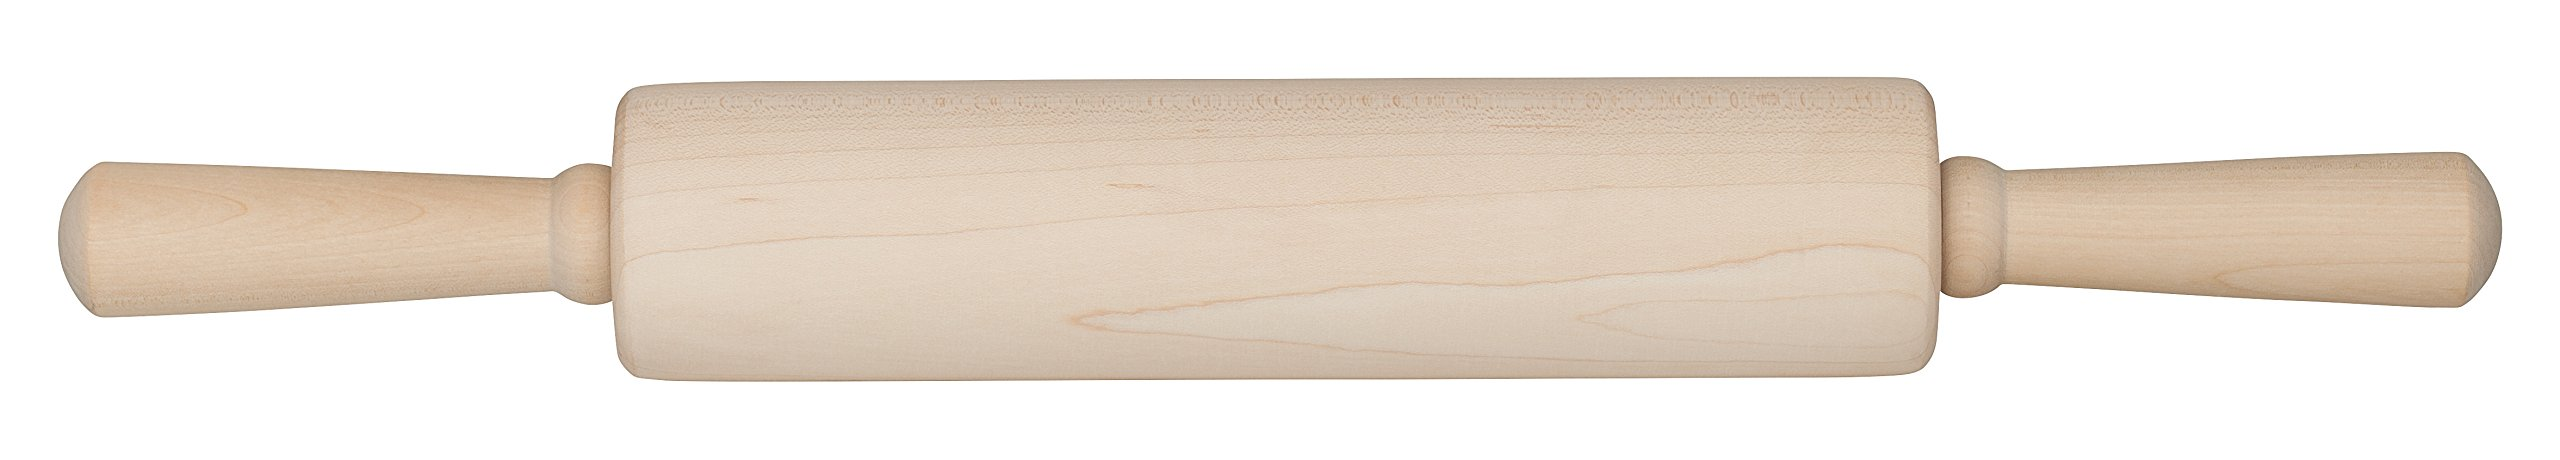 Mrs. Anderson's Stainless Steel Ball Bearing, Classic Wooden Rolling Pin, Made in America,10-Inch x 2.25-Inch